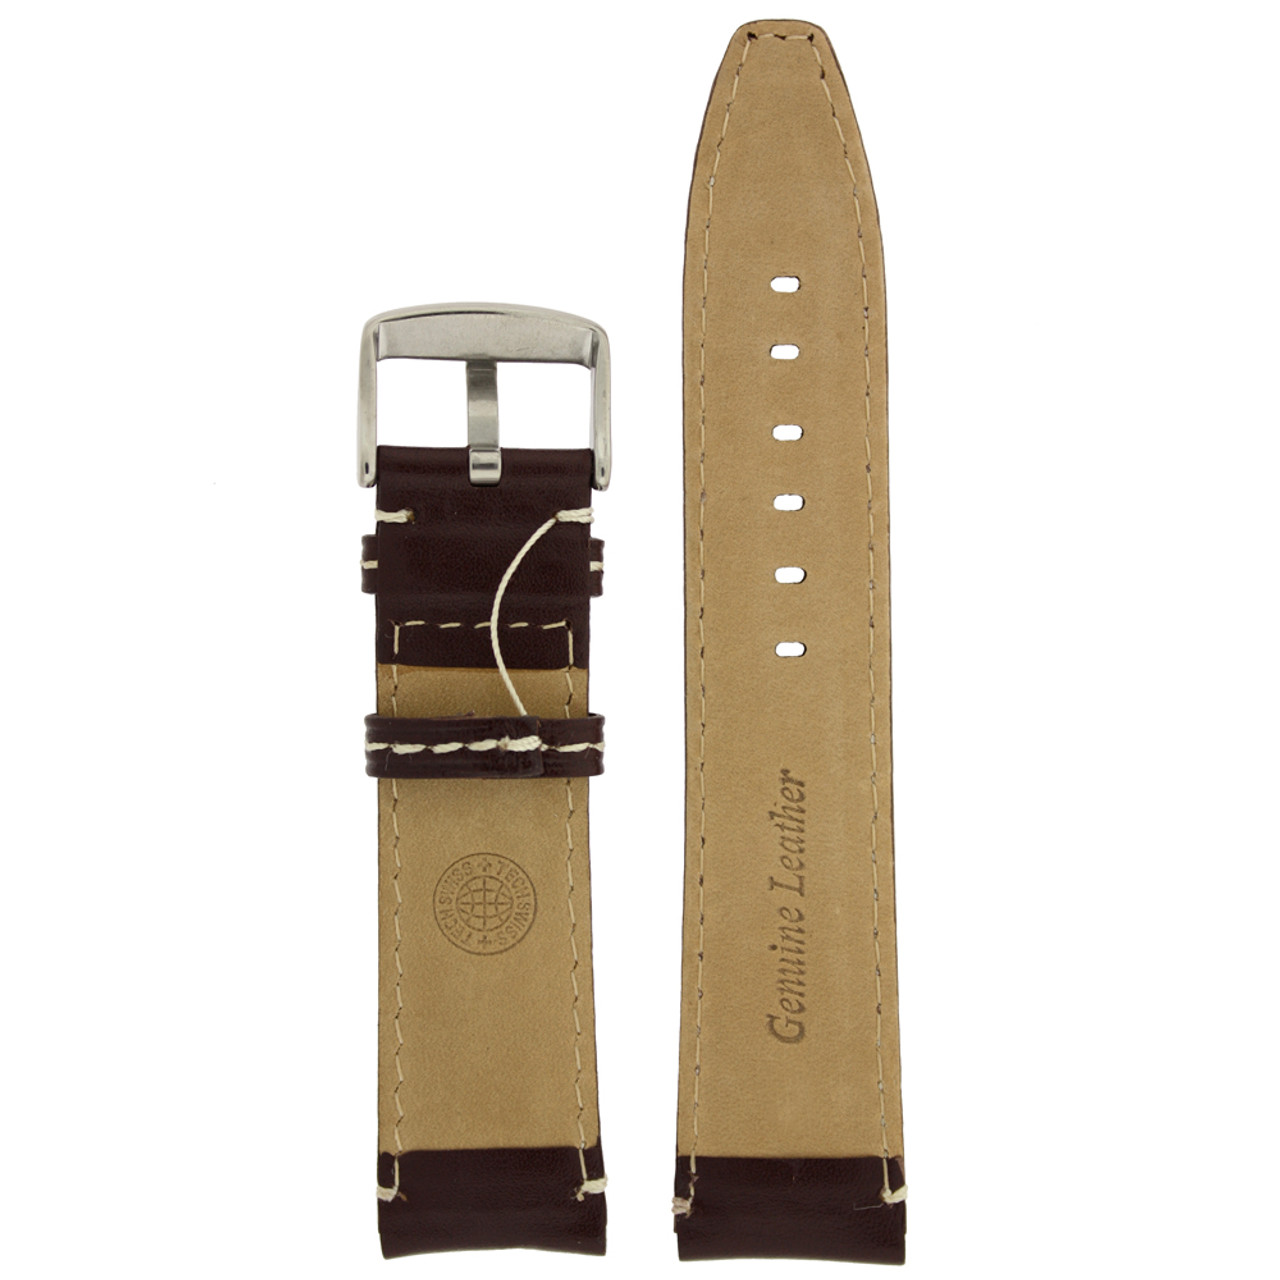 Leather Watch Band in brown with white topstitching by Tech Swiss - Bottom View - Main